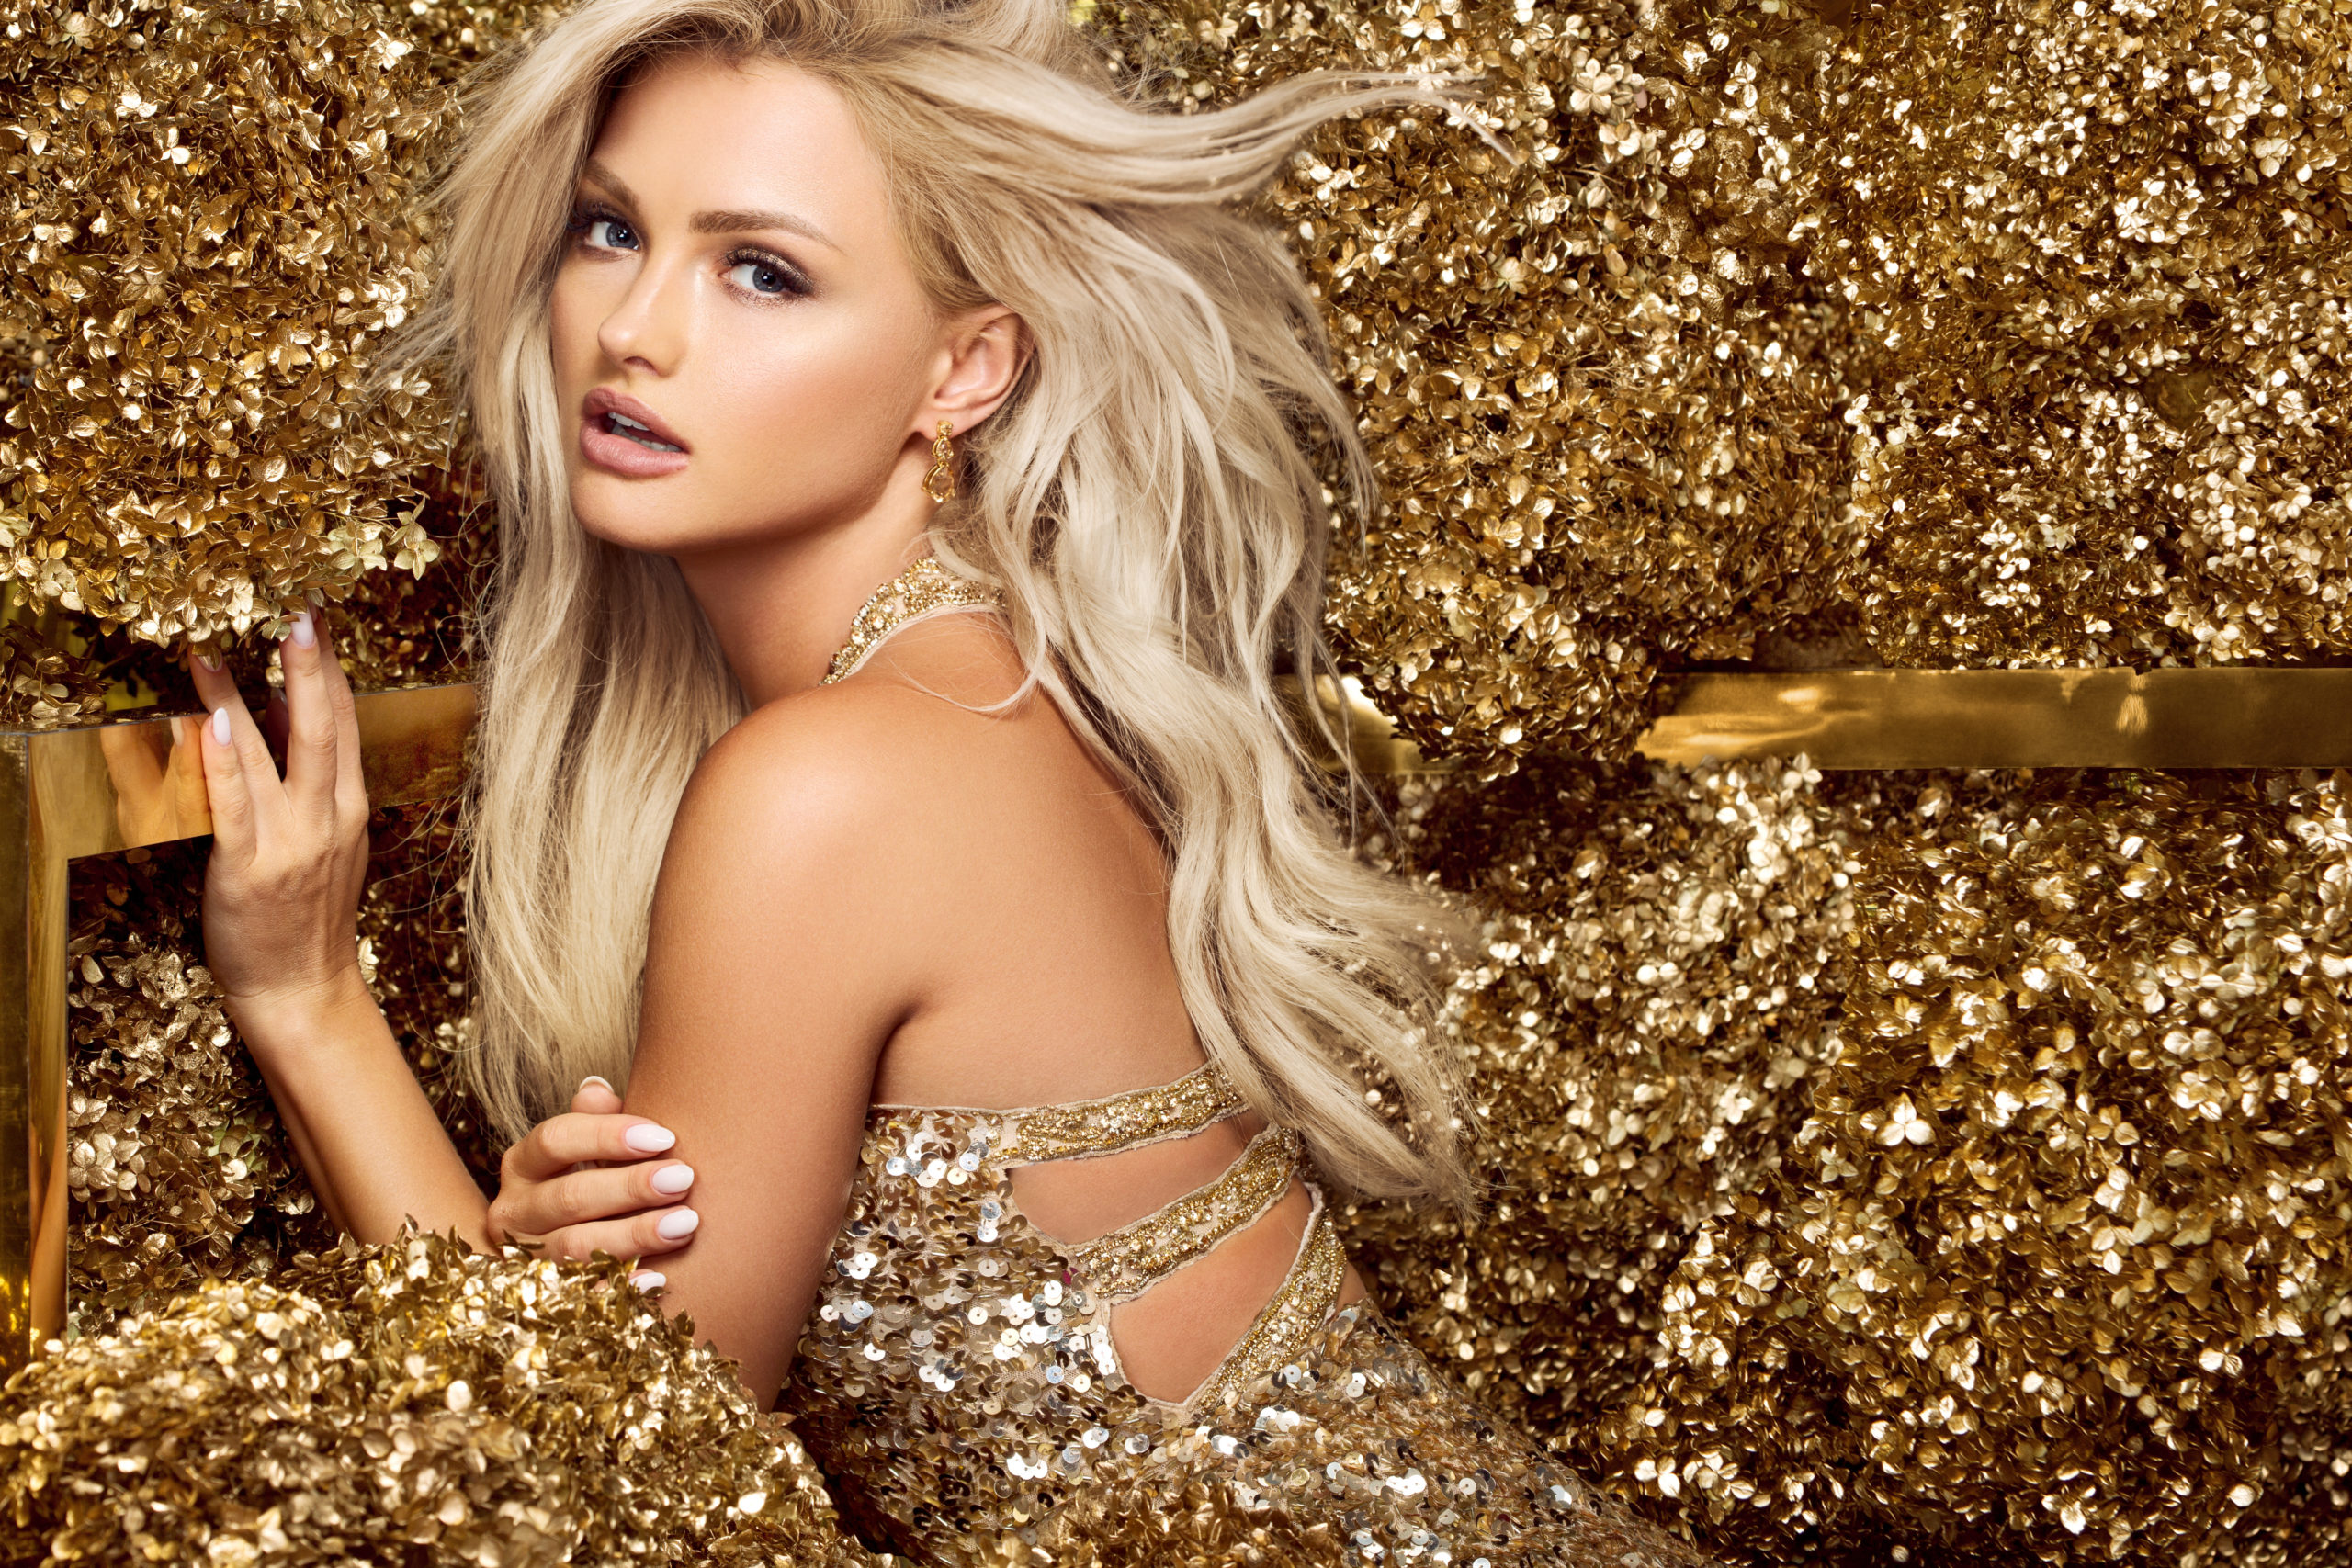 beautiful blonde woman showing AQUAGOLD® flawless skin surrounded by gold glitter and sequins